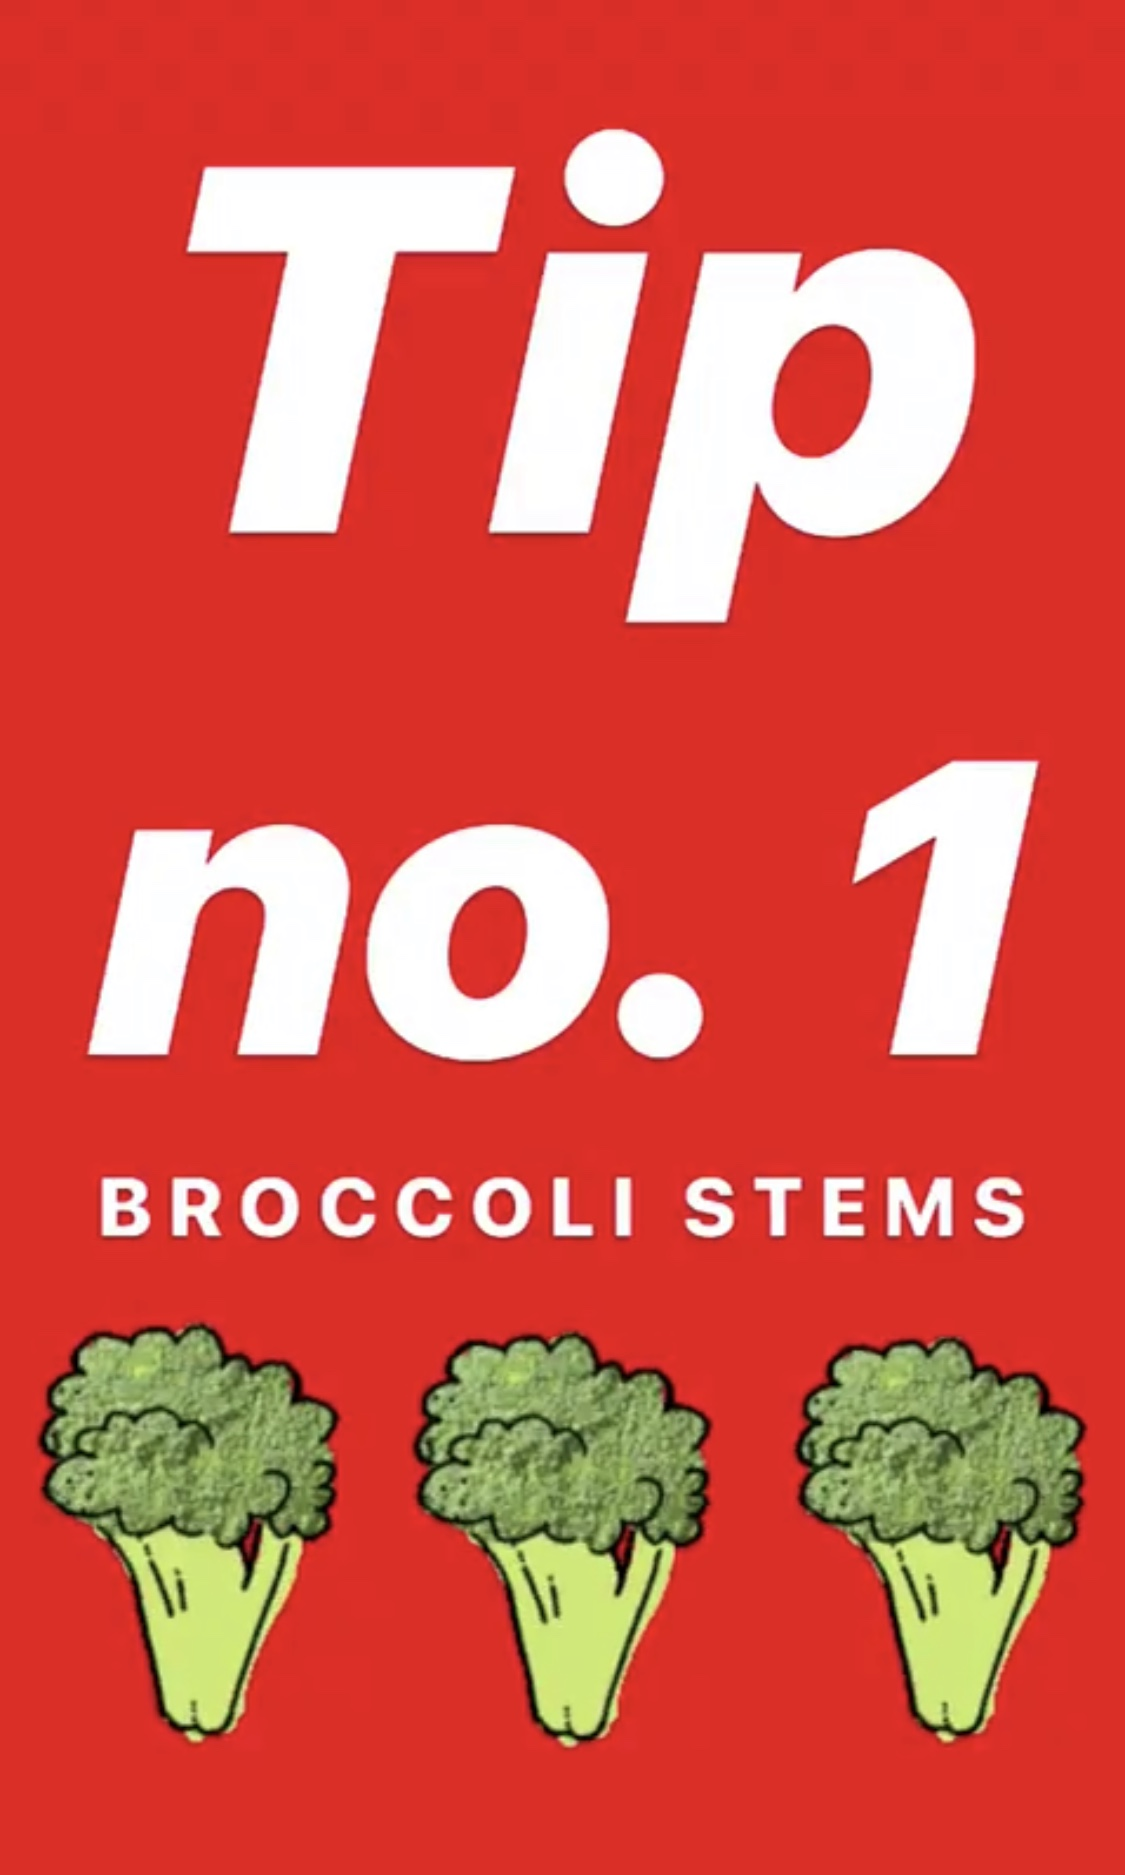 If you're not using the whole broccoli, you're doing it wrong. - The stems are the good stuff!